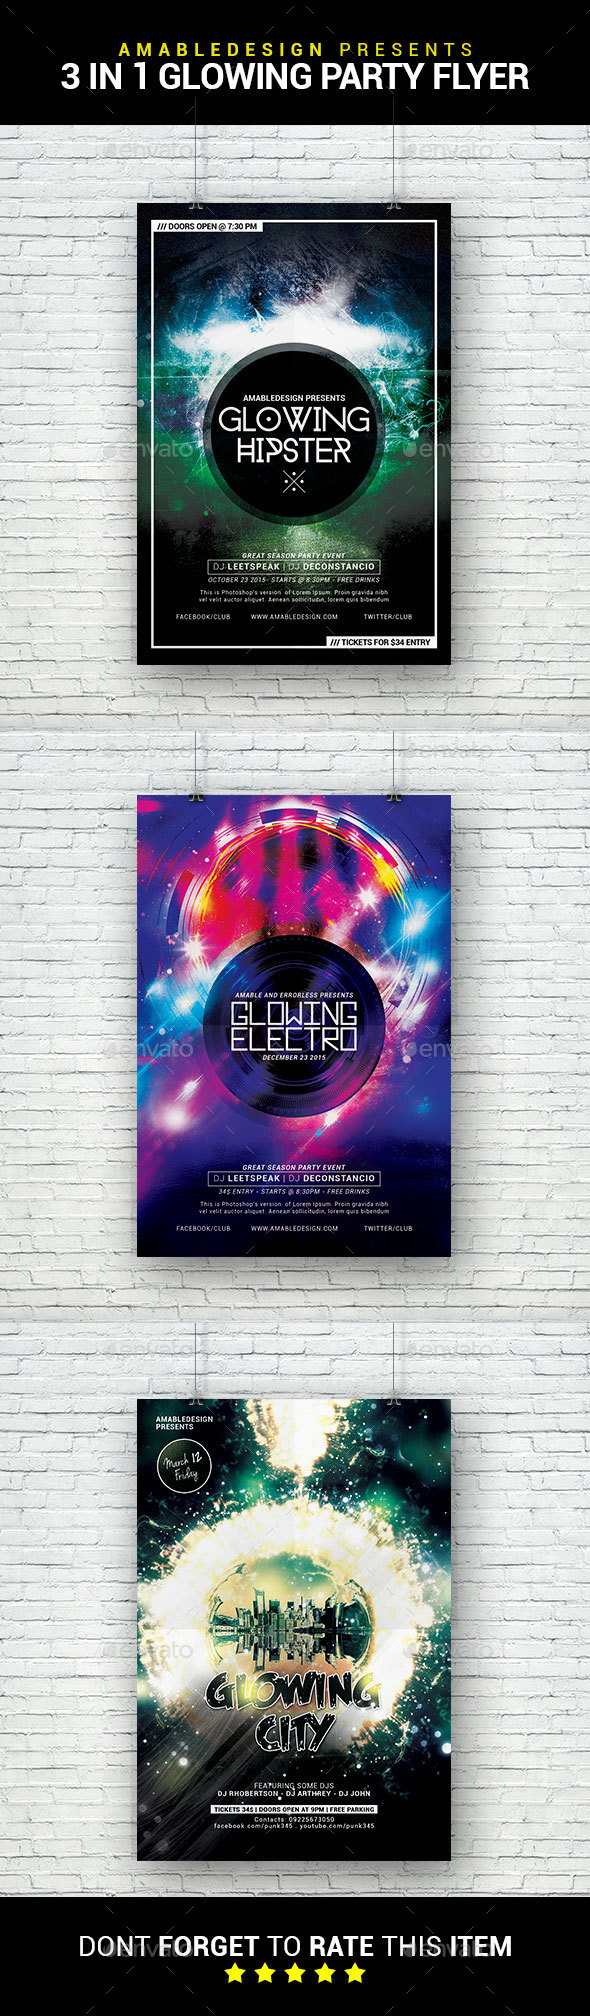 3 in 1 Glowing Party Flyer/Poster Bundle - Clubs & Parties Events